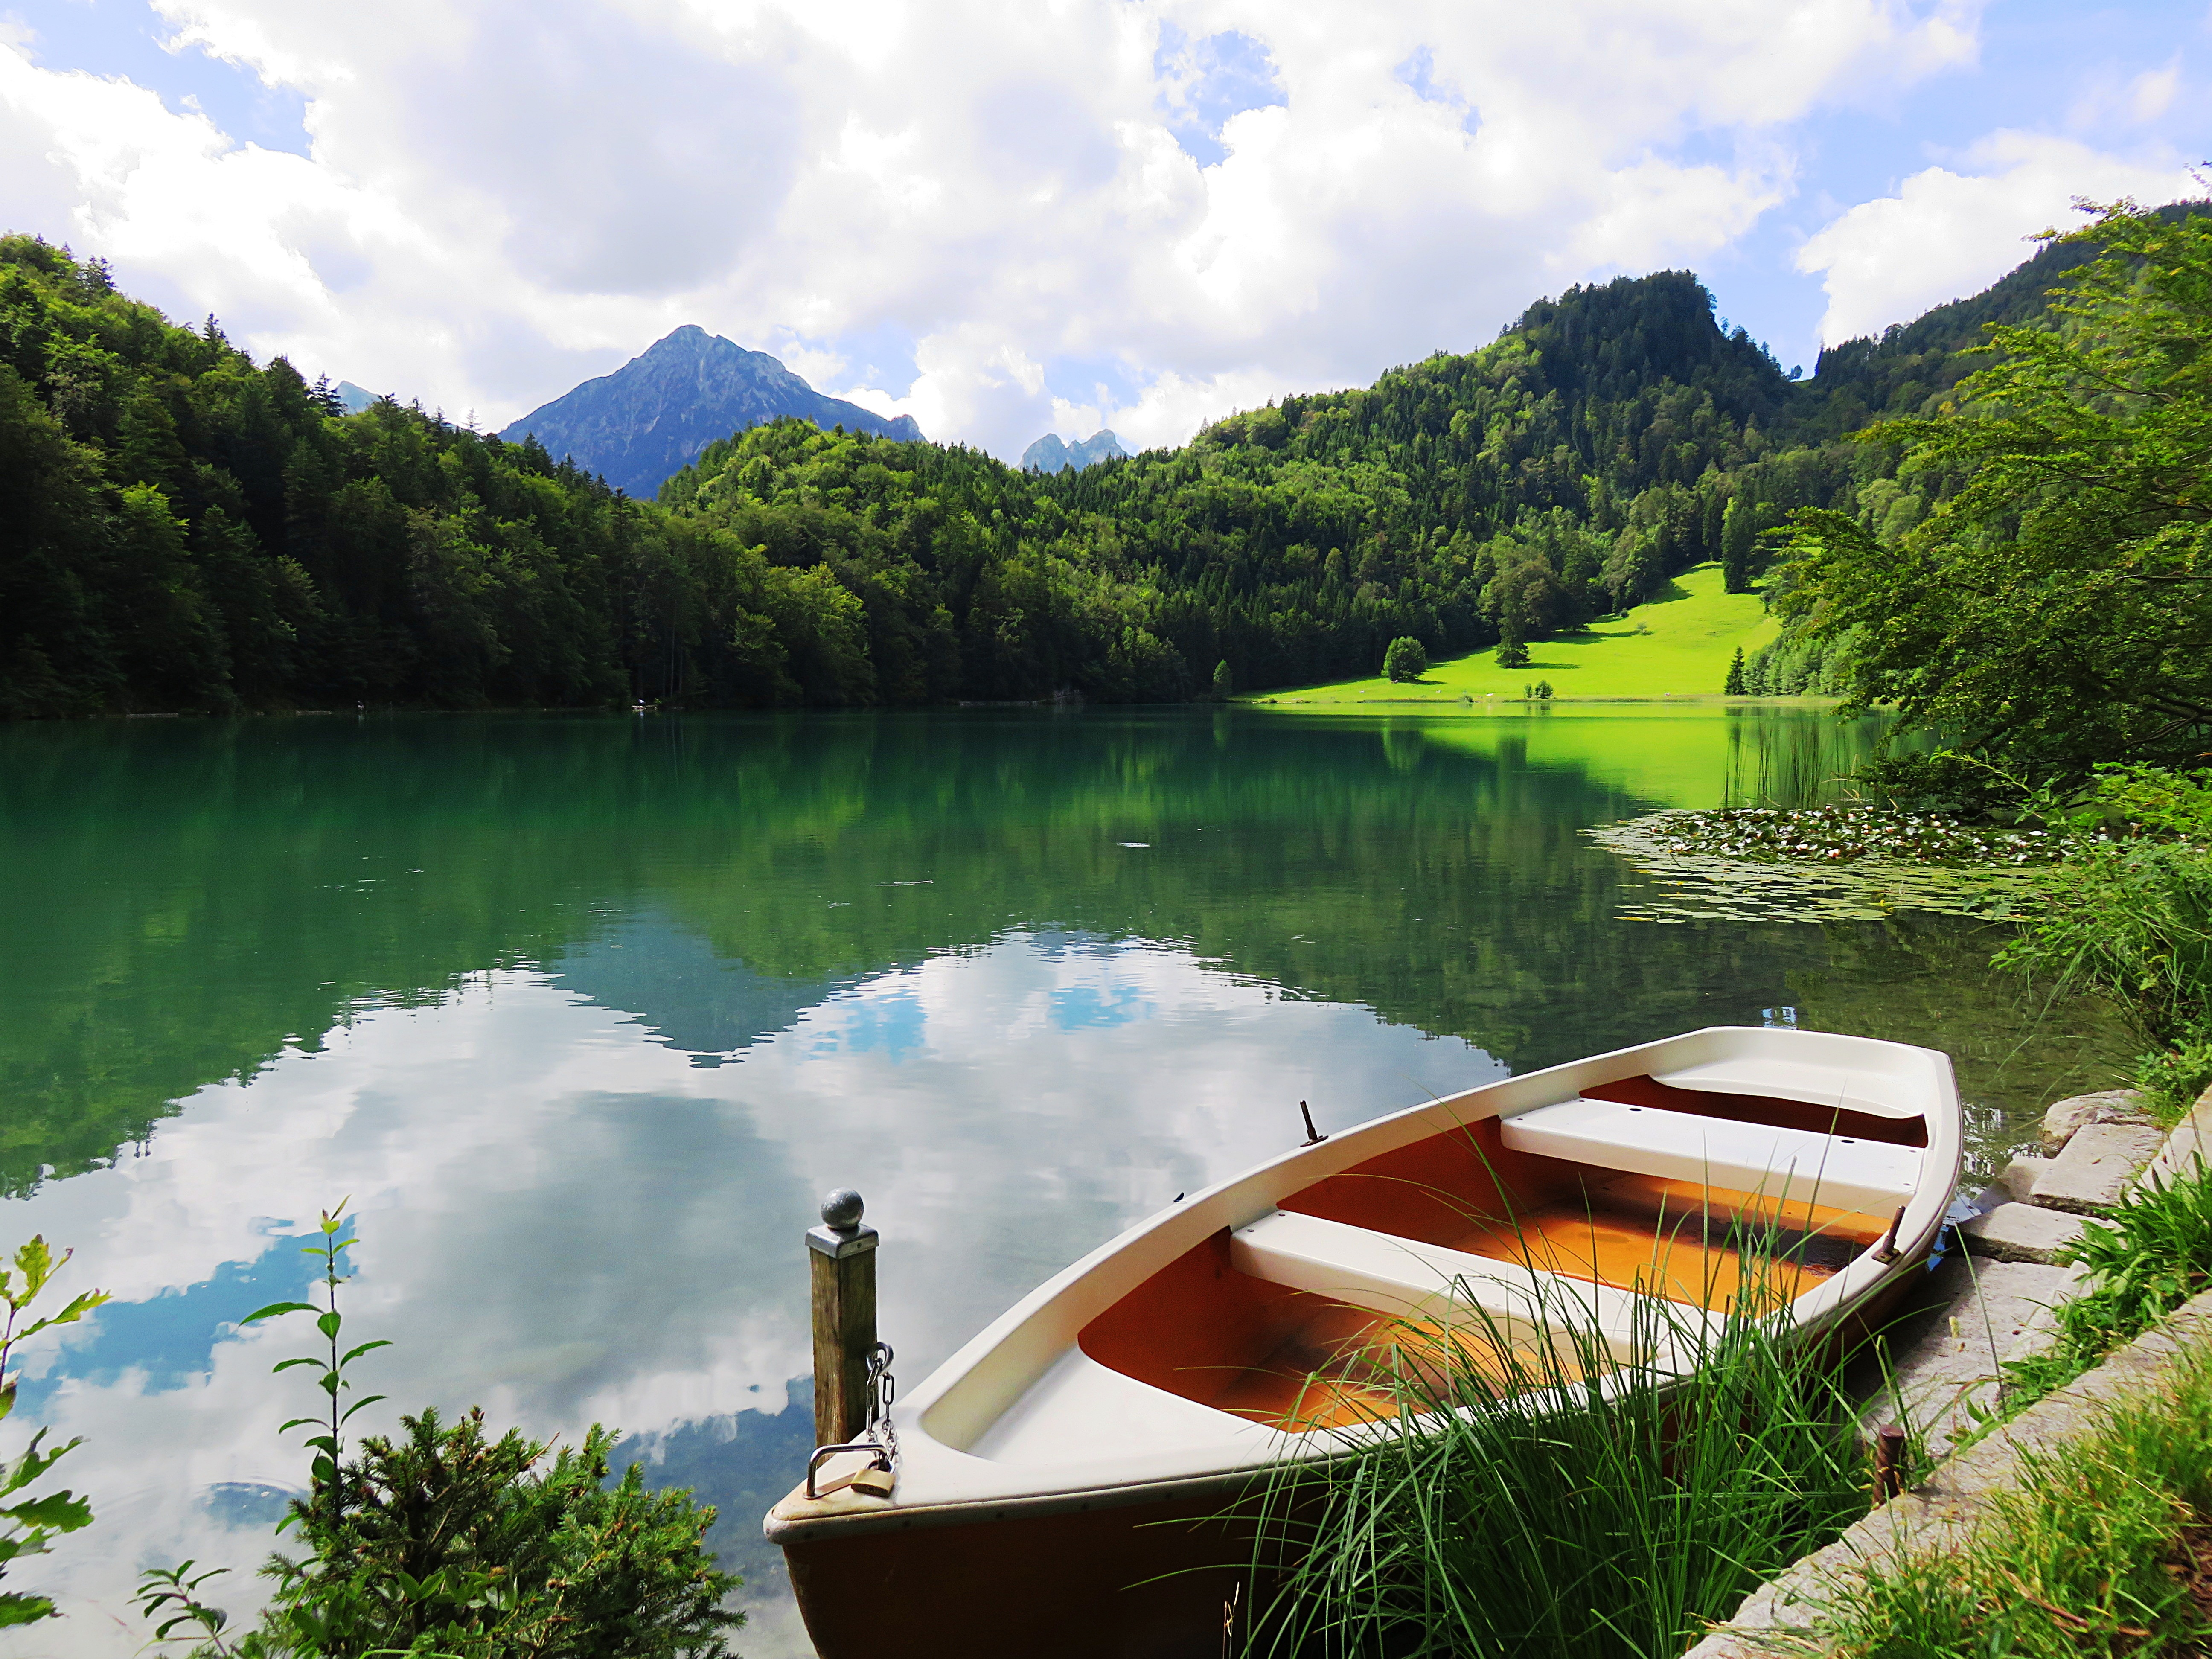 Boat on Dock With Mountain Background